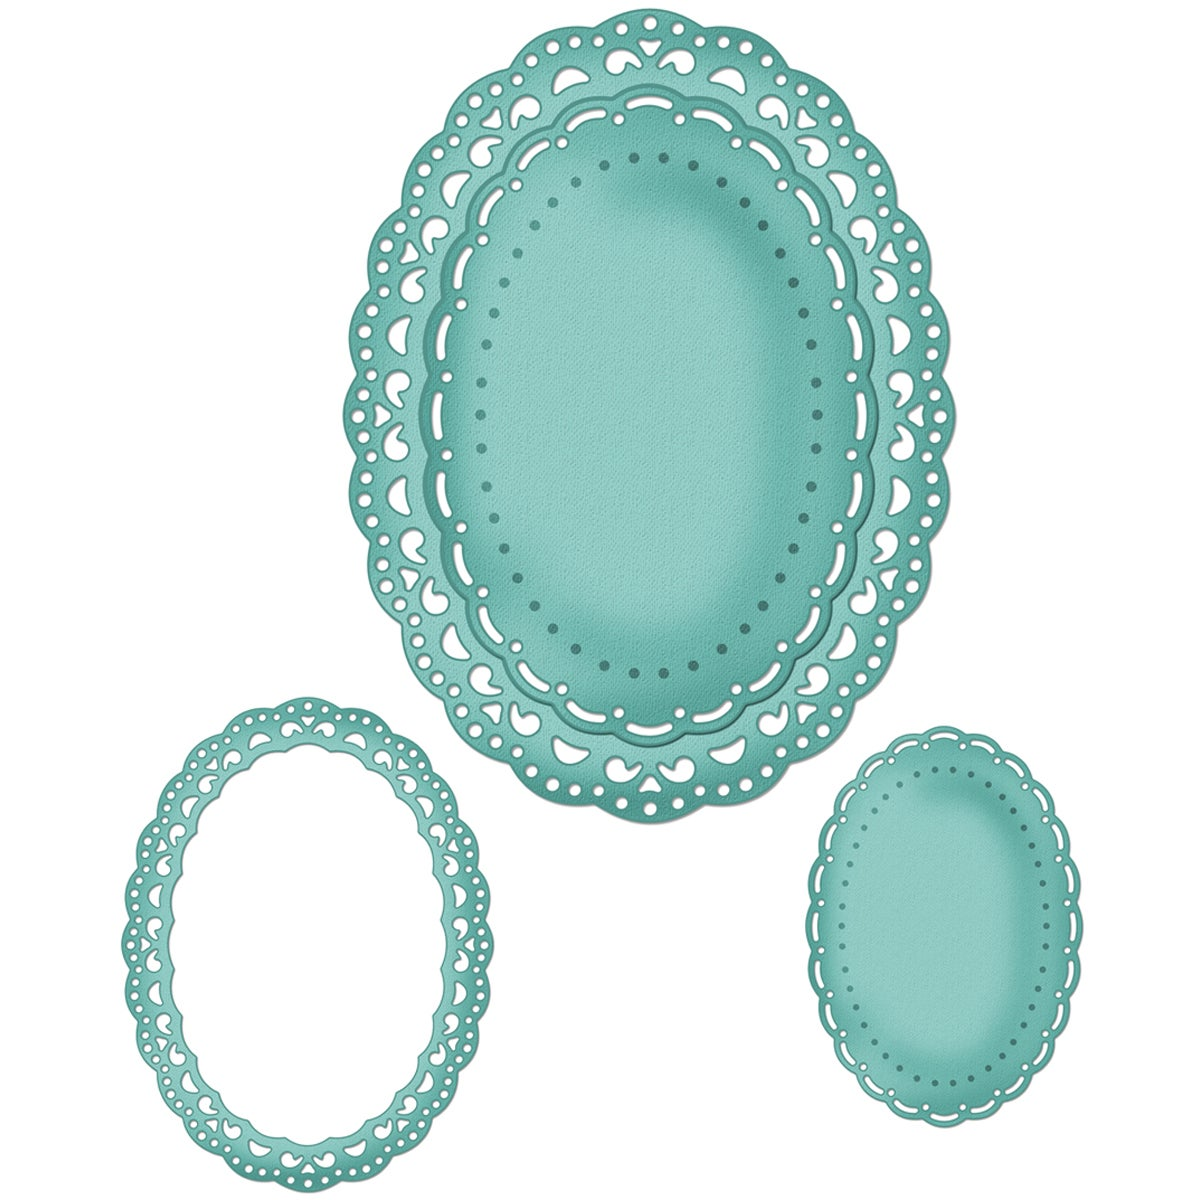 CottageCutz Die 4X6-Oval Doily & Frame Made Easy